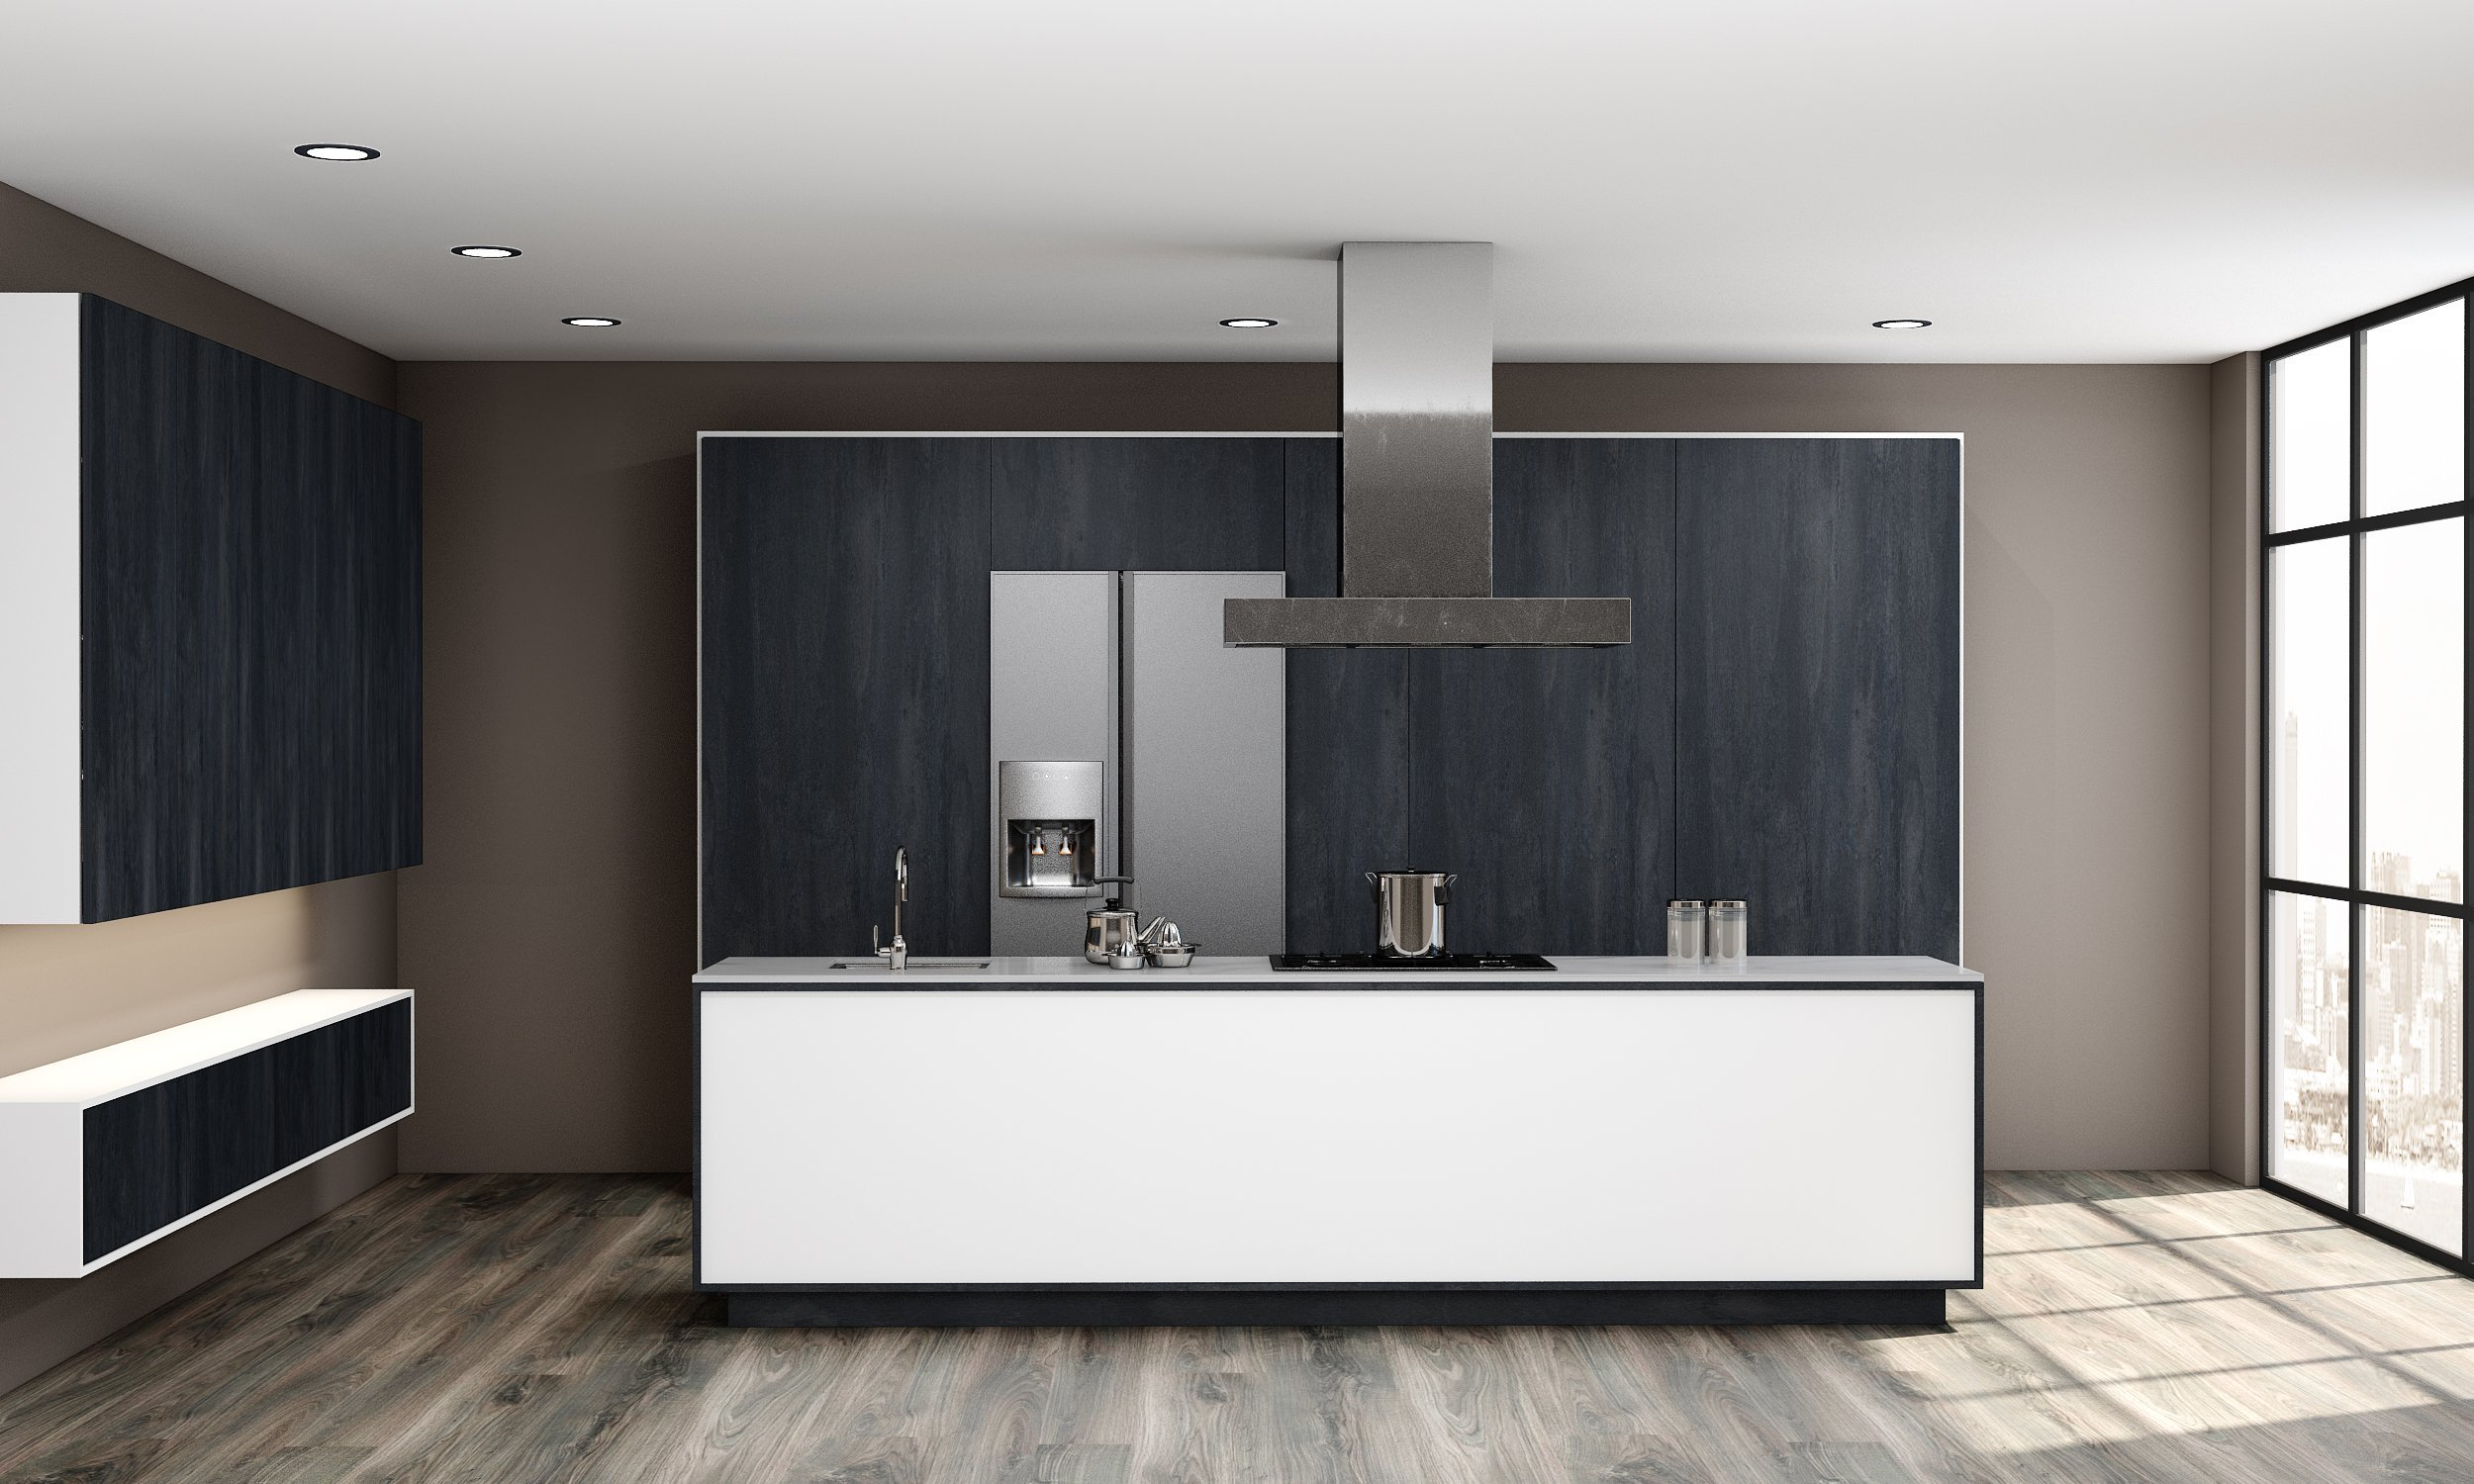 Wooden Kitchens of Charcoal Finish With White Matt and a Pocket Door